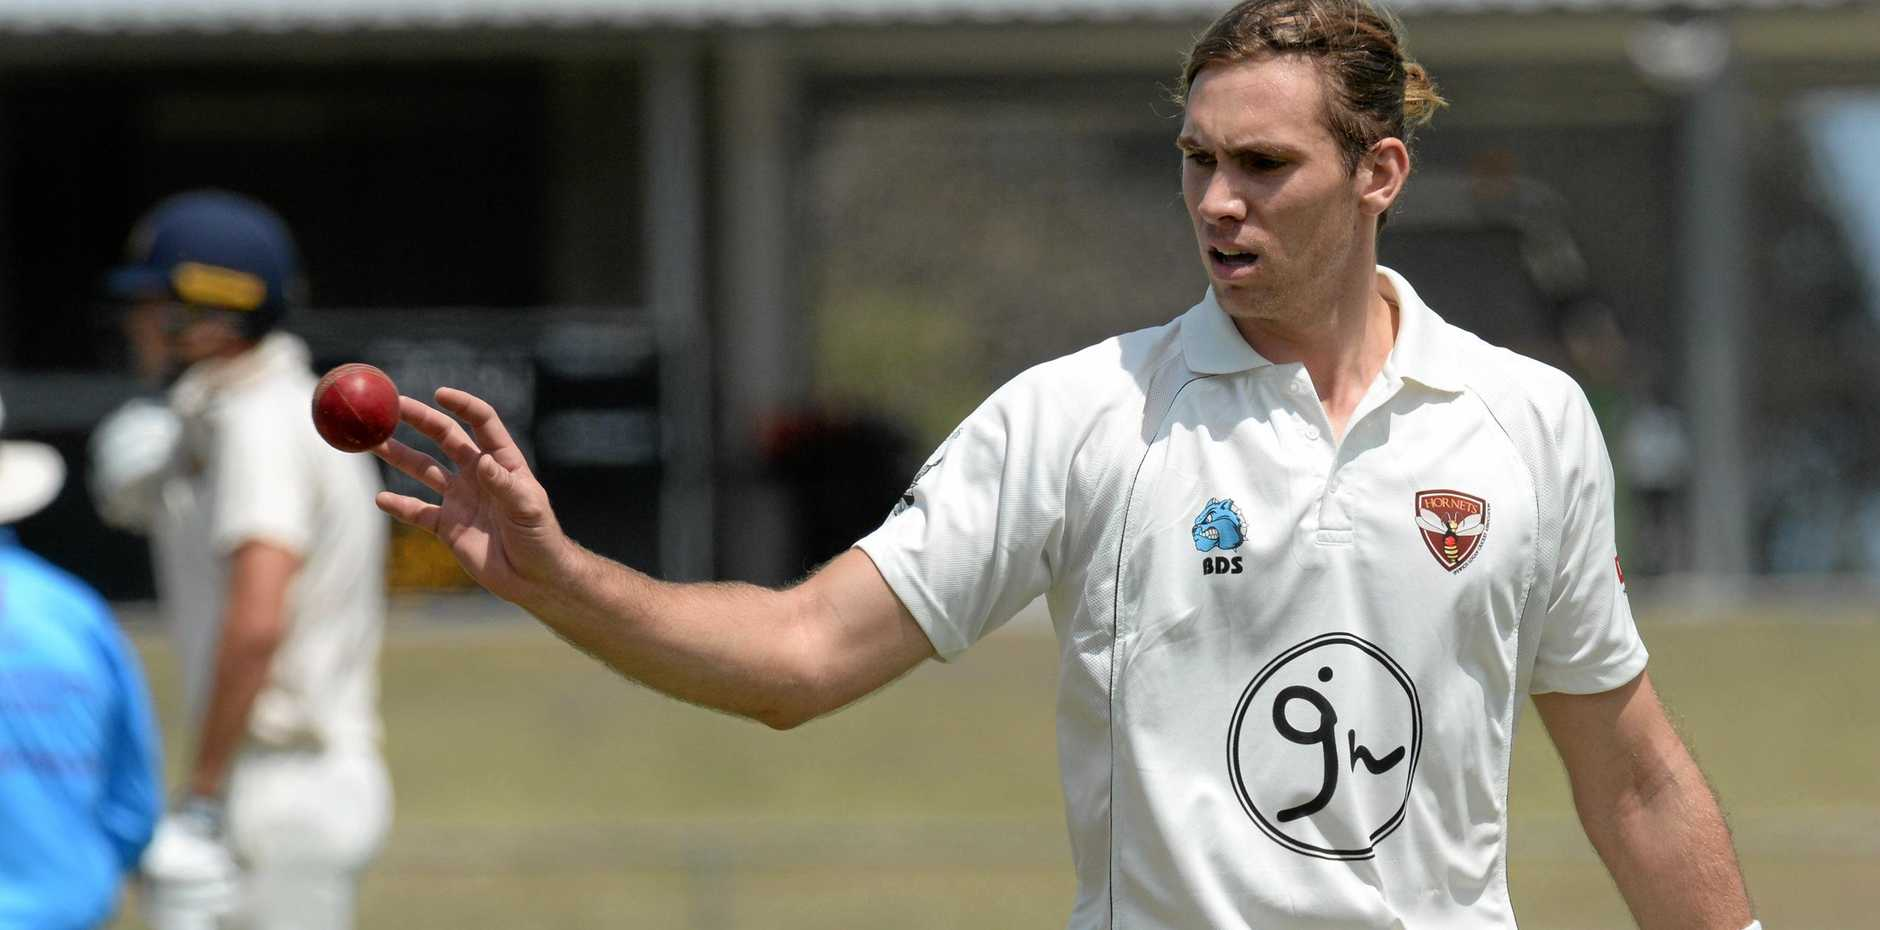 Adam Smith took four wickets in the Hornets' win over Sandgate-Redcliffe on Saturday.